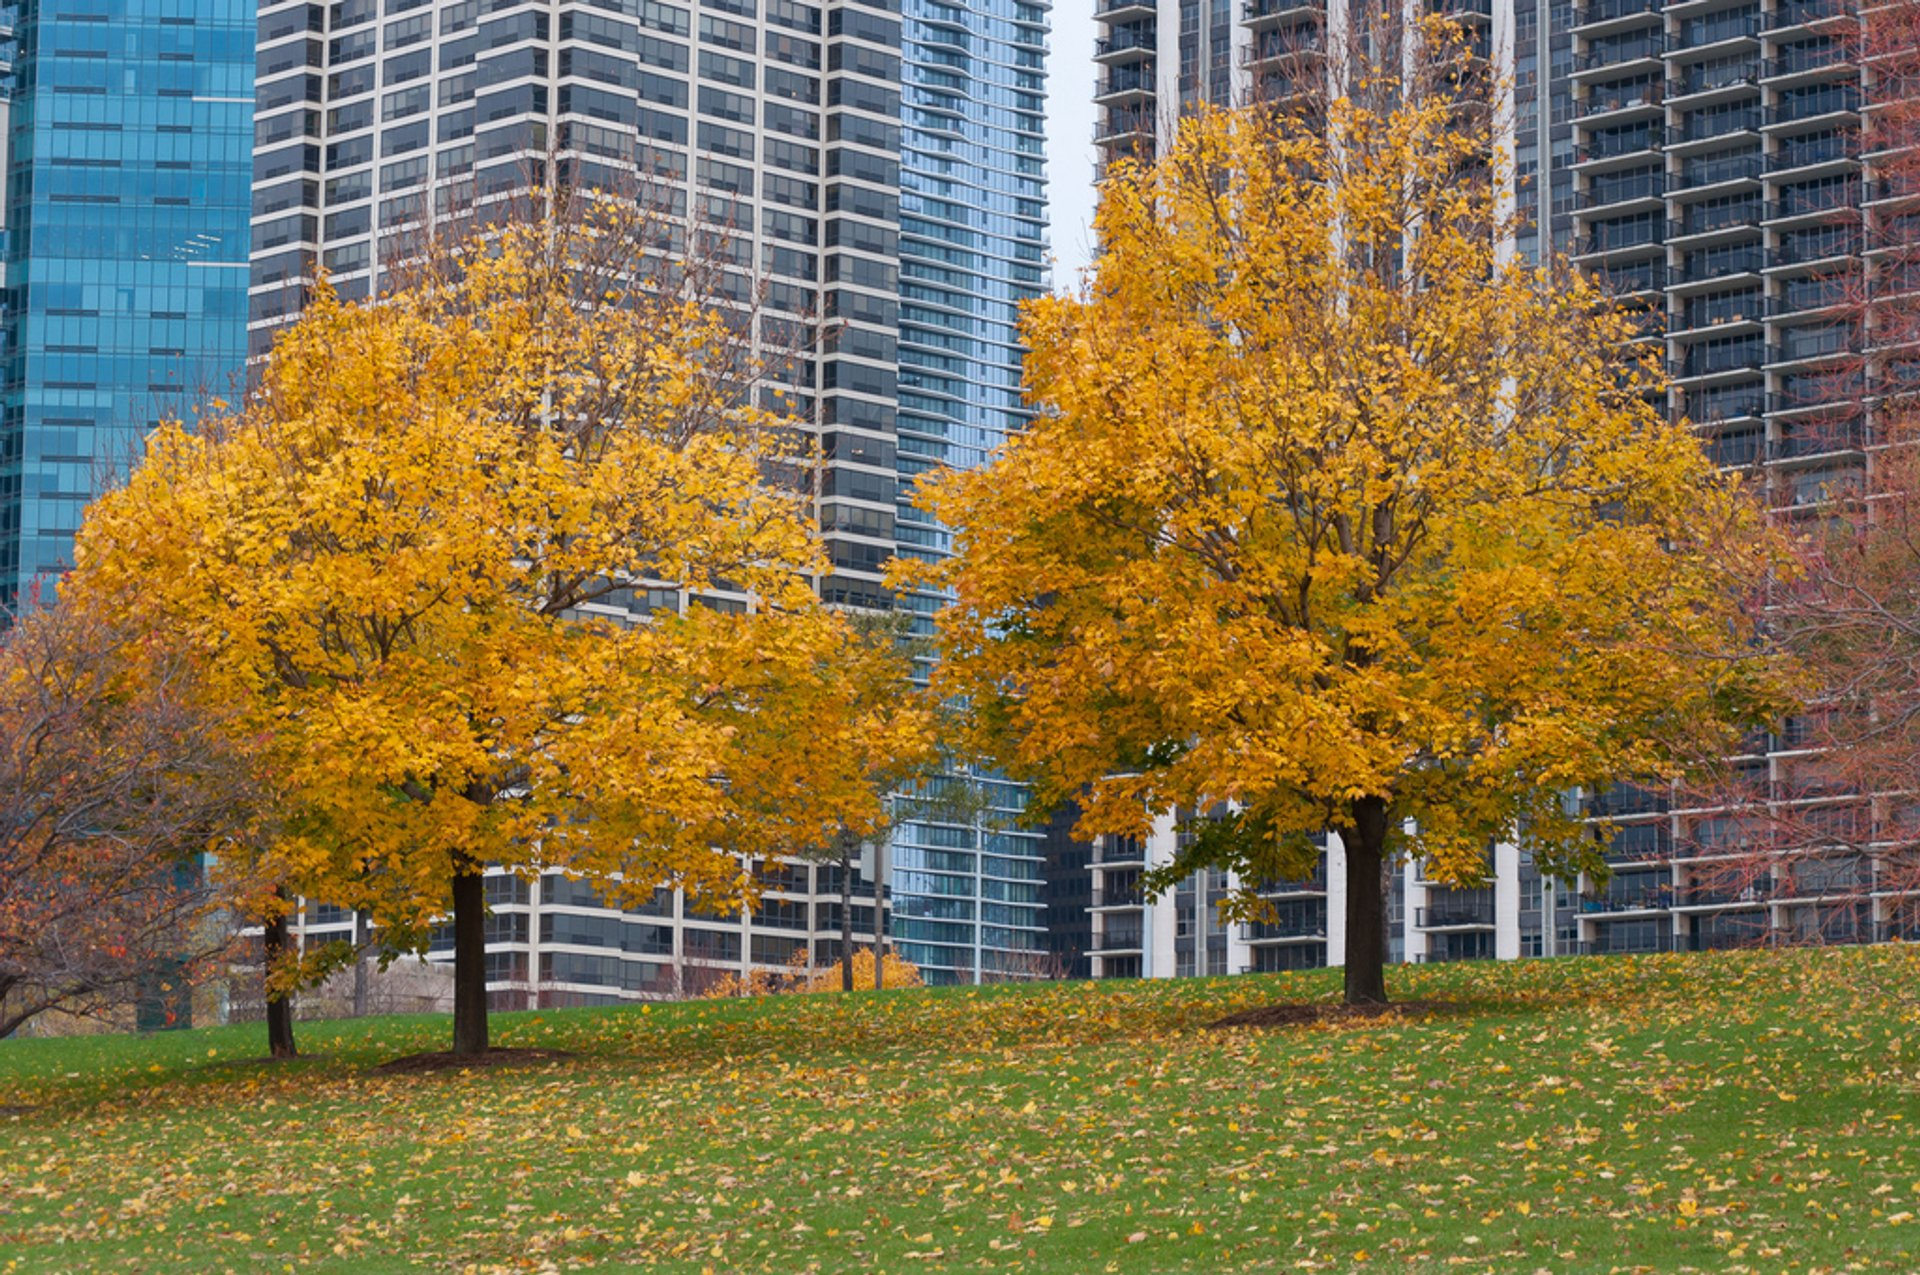 Autumn in Chicago 2020 - Best Time